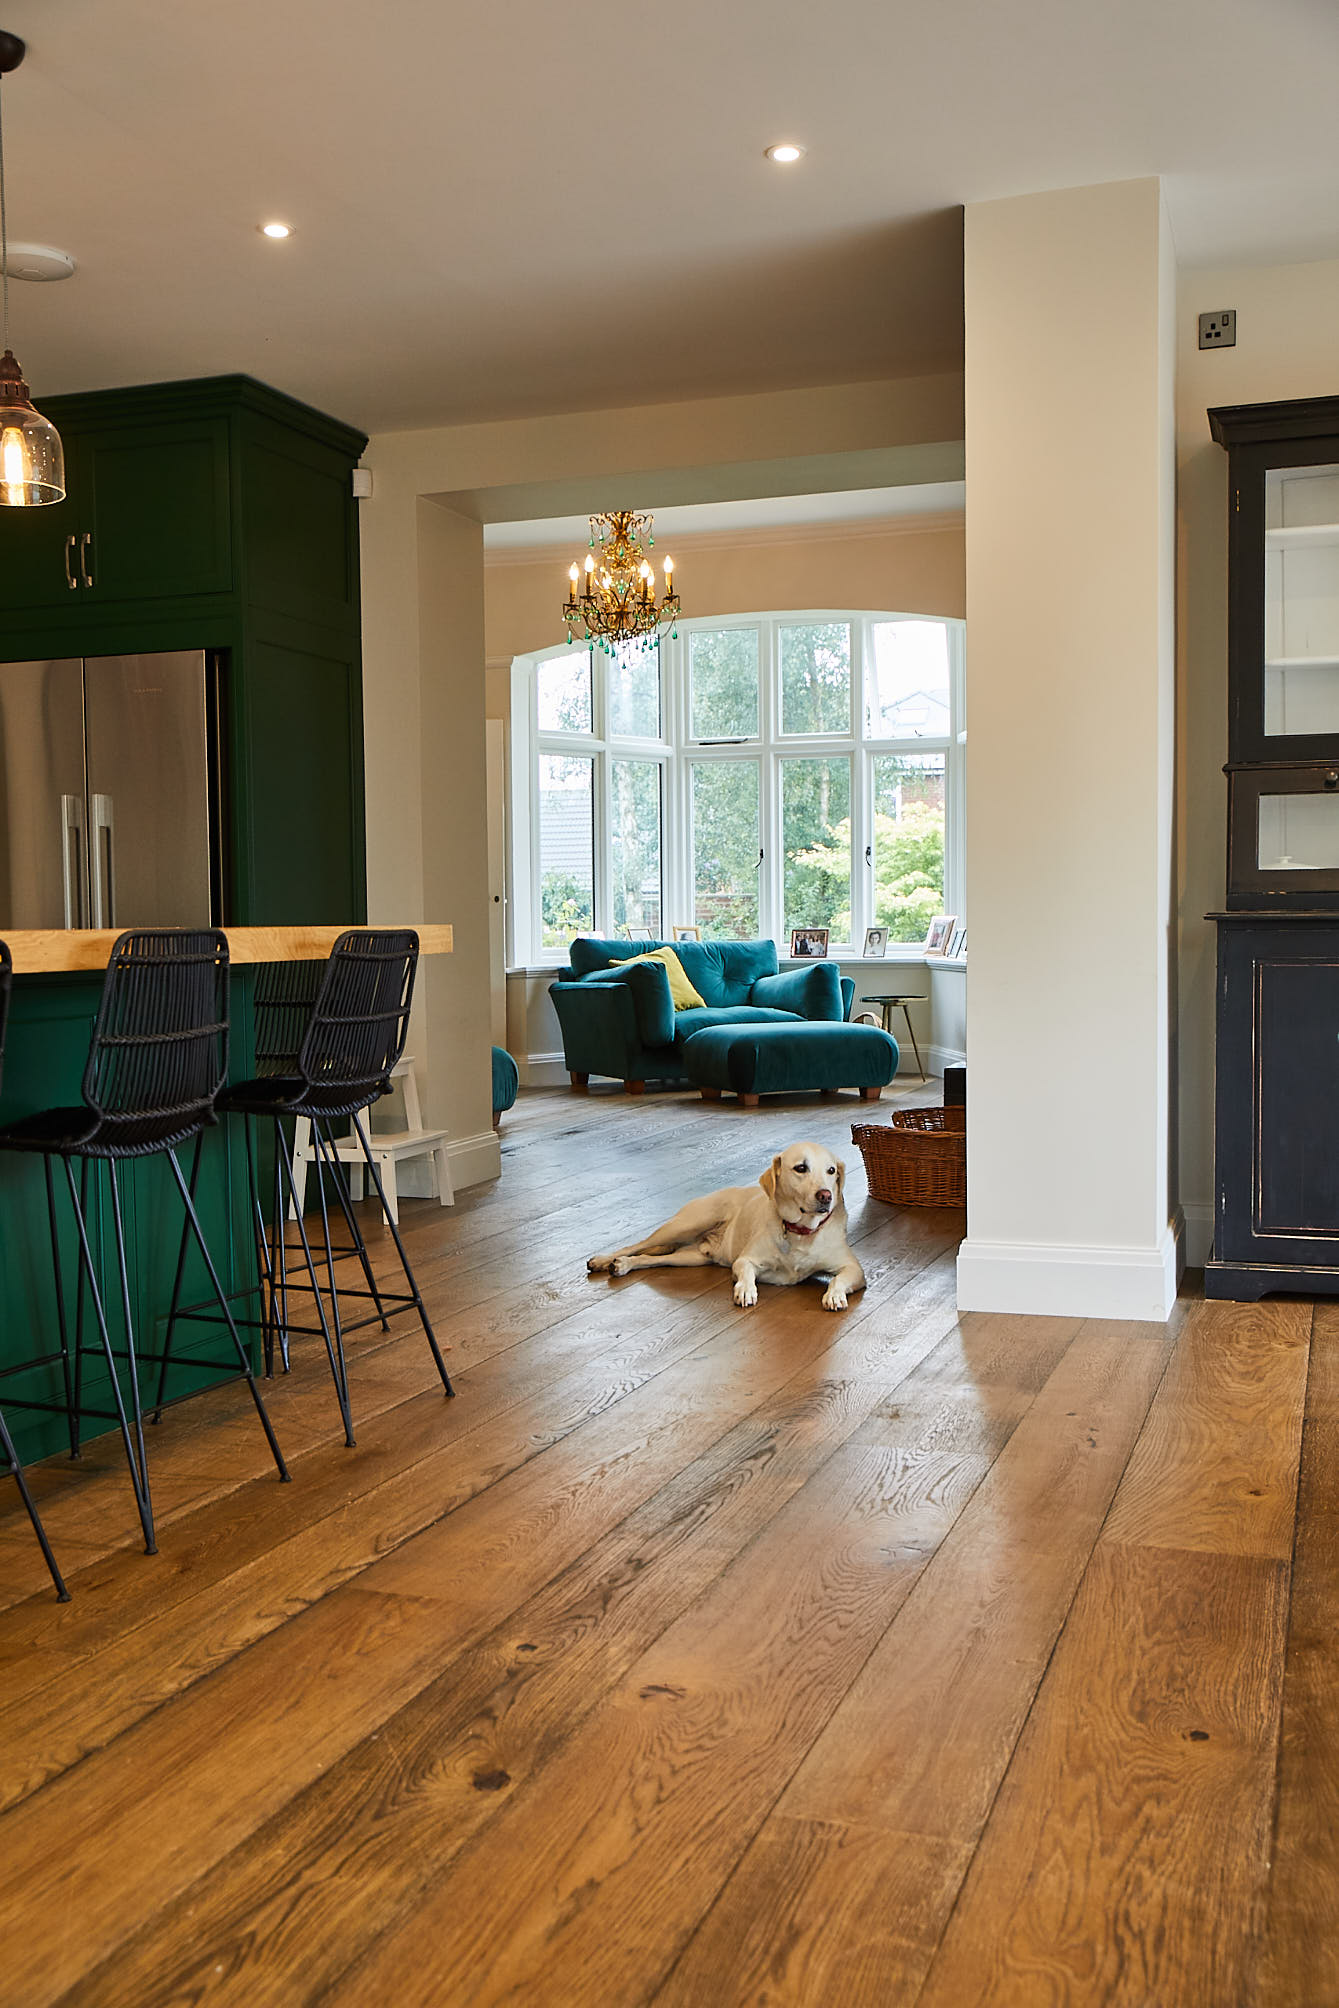 Dog sits in kitchen with oak flooring